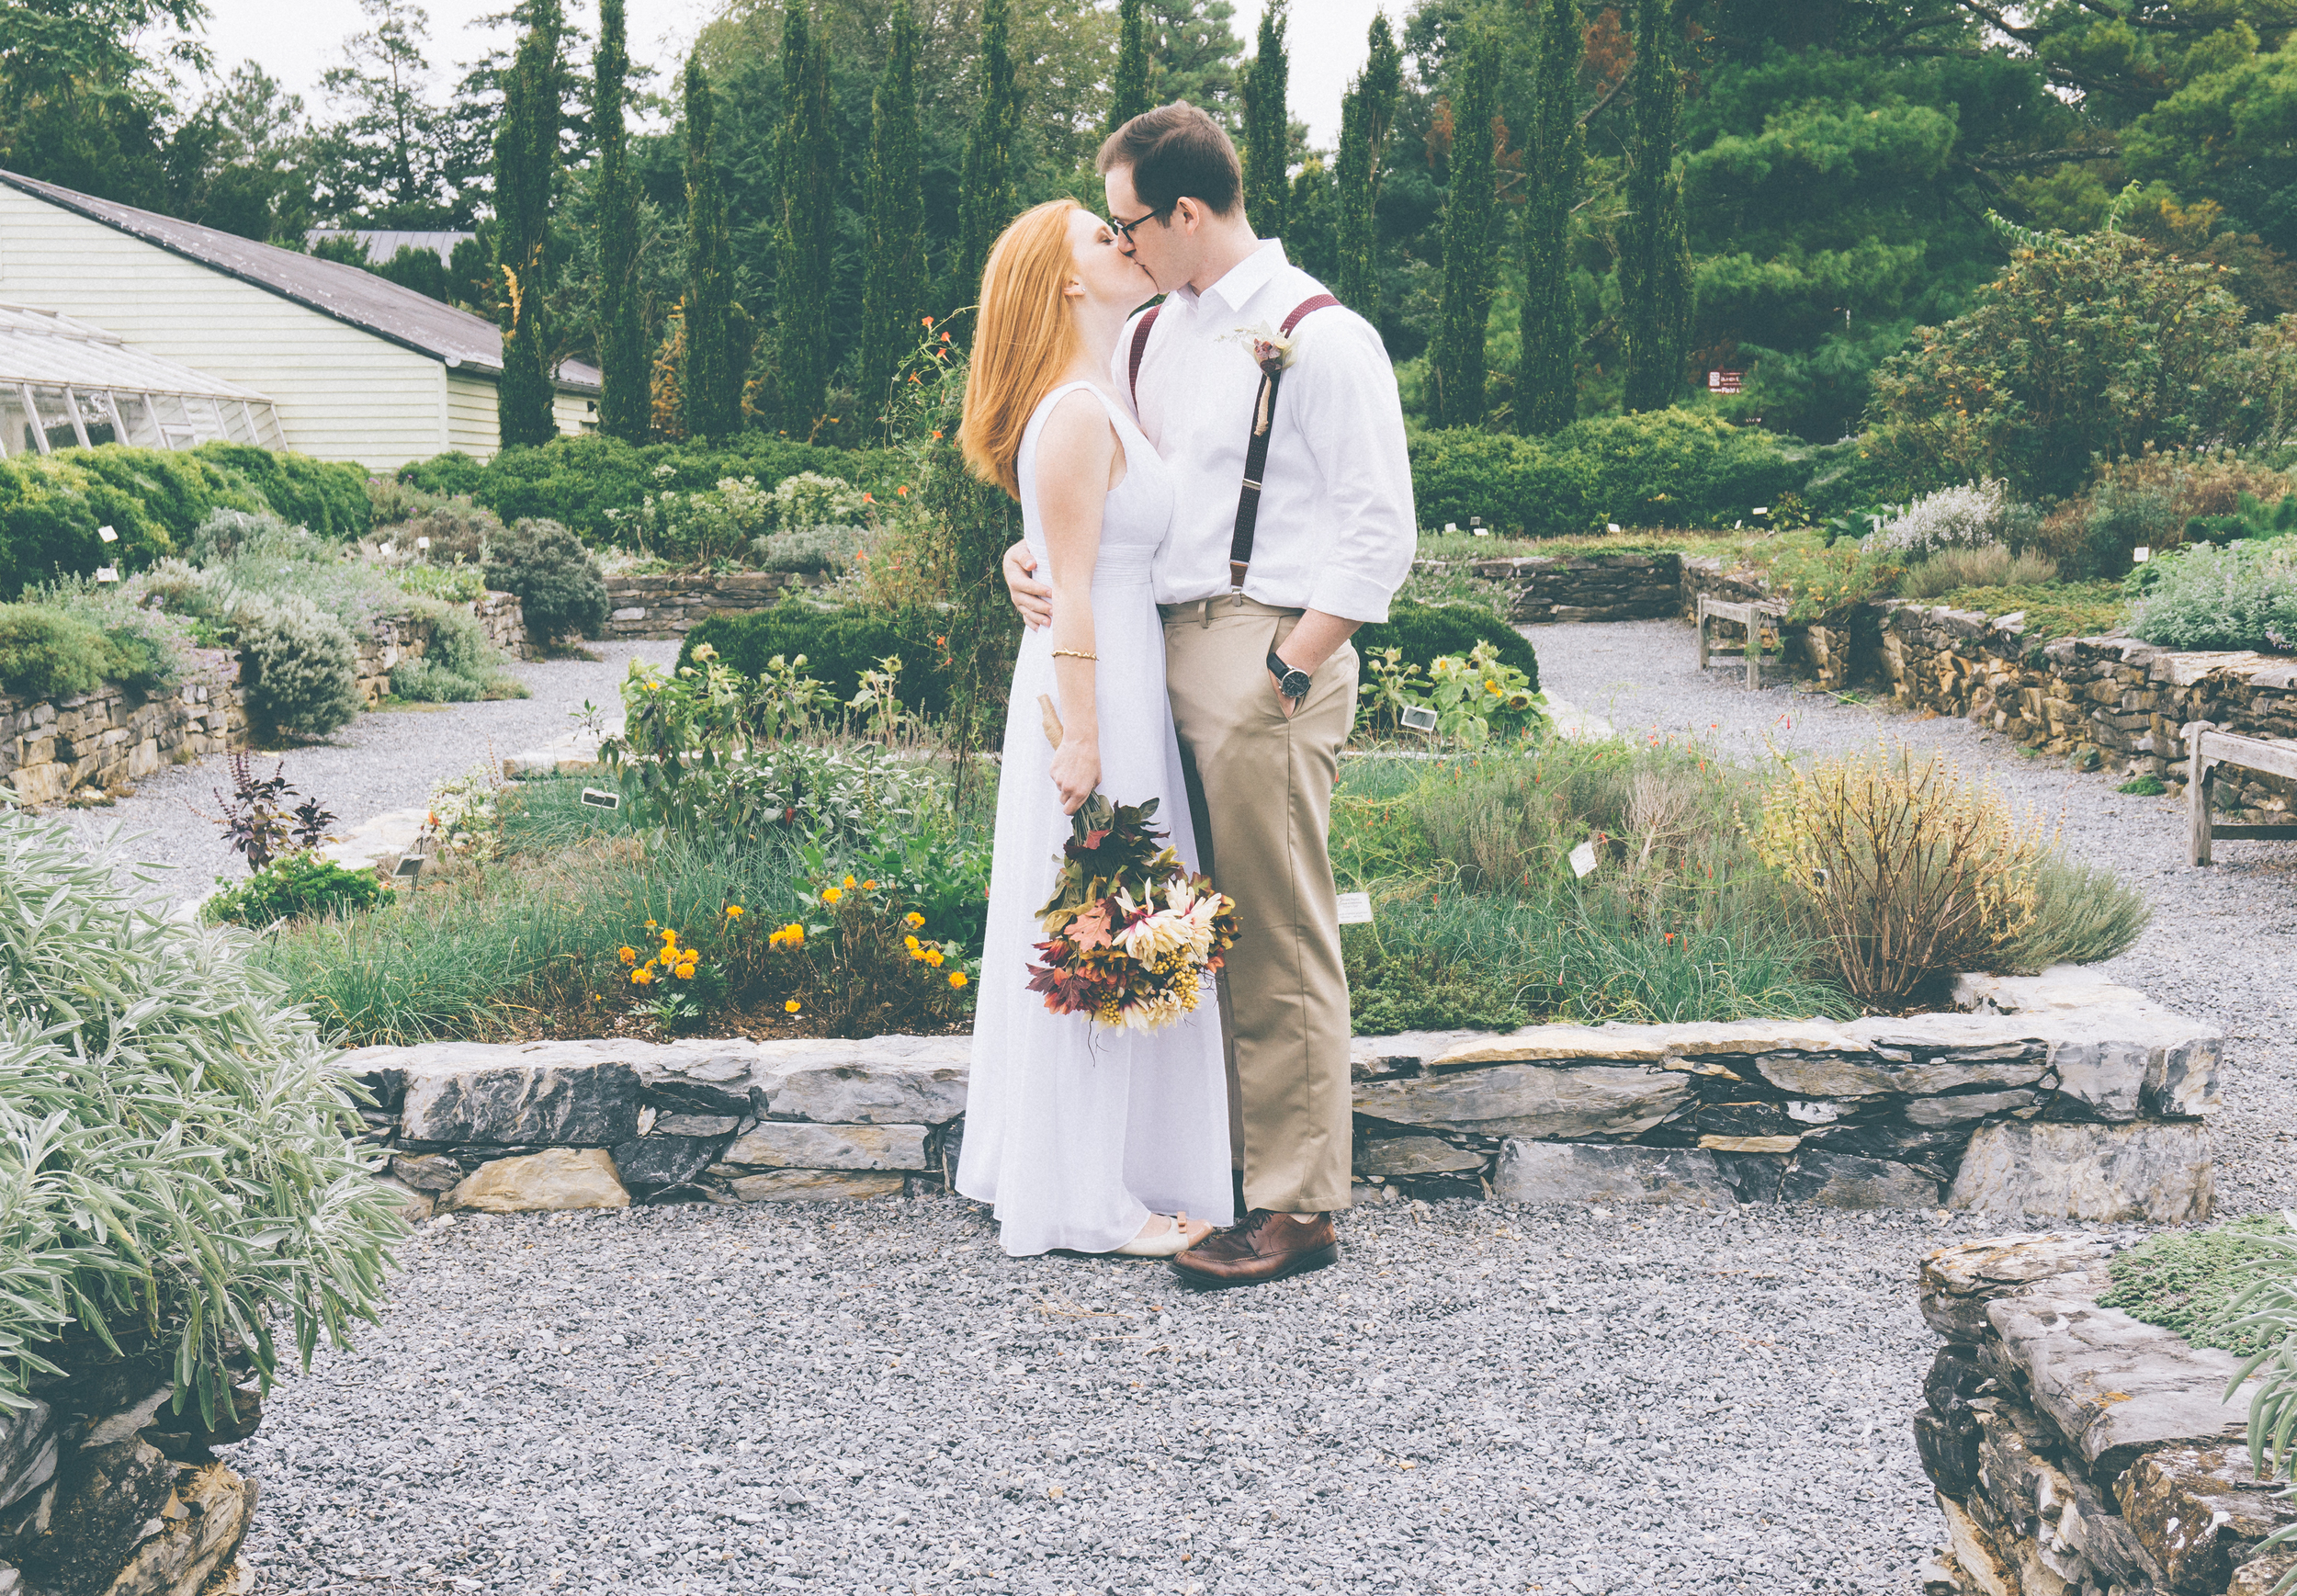 woodland_wedding_taneisha_marie_photography-2.jpg